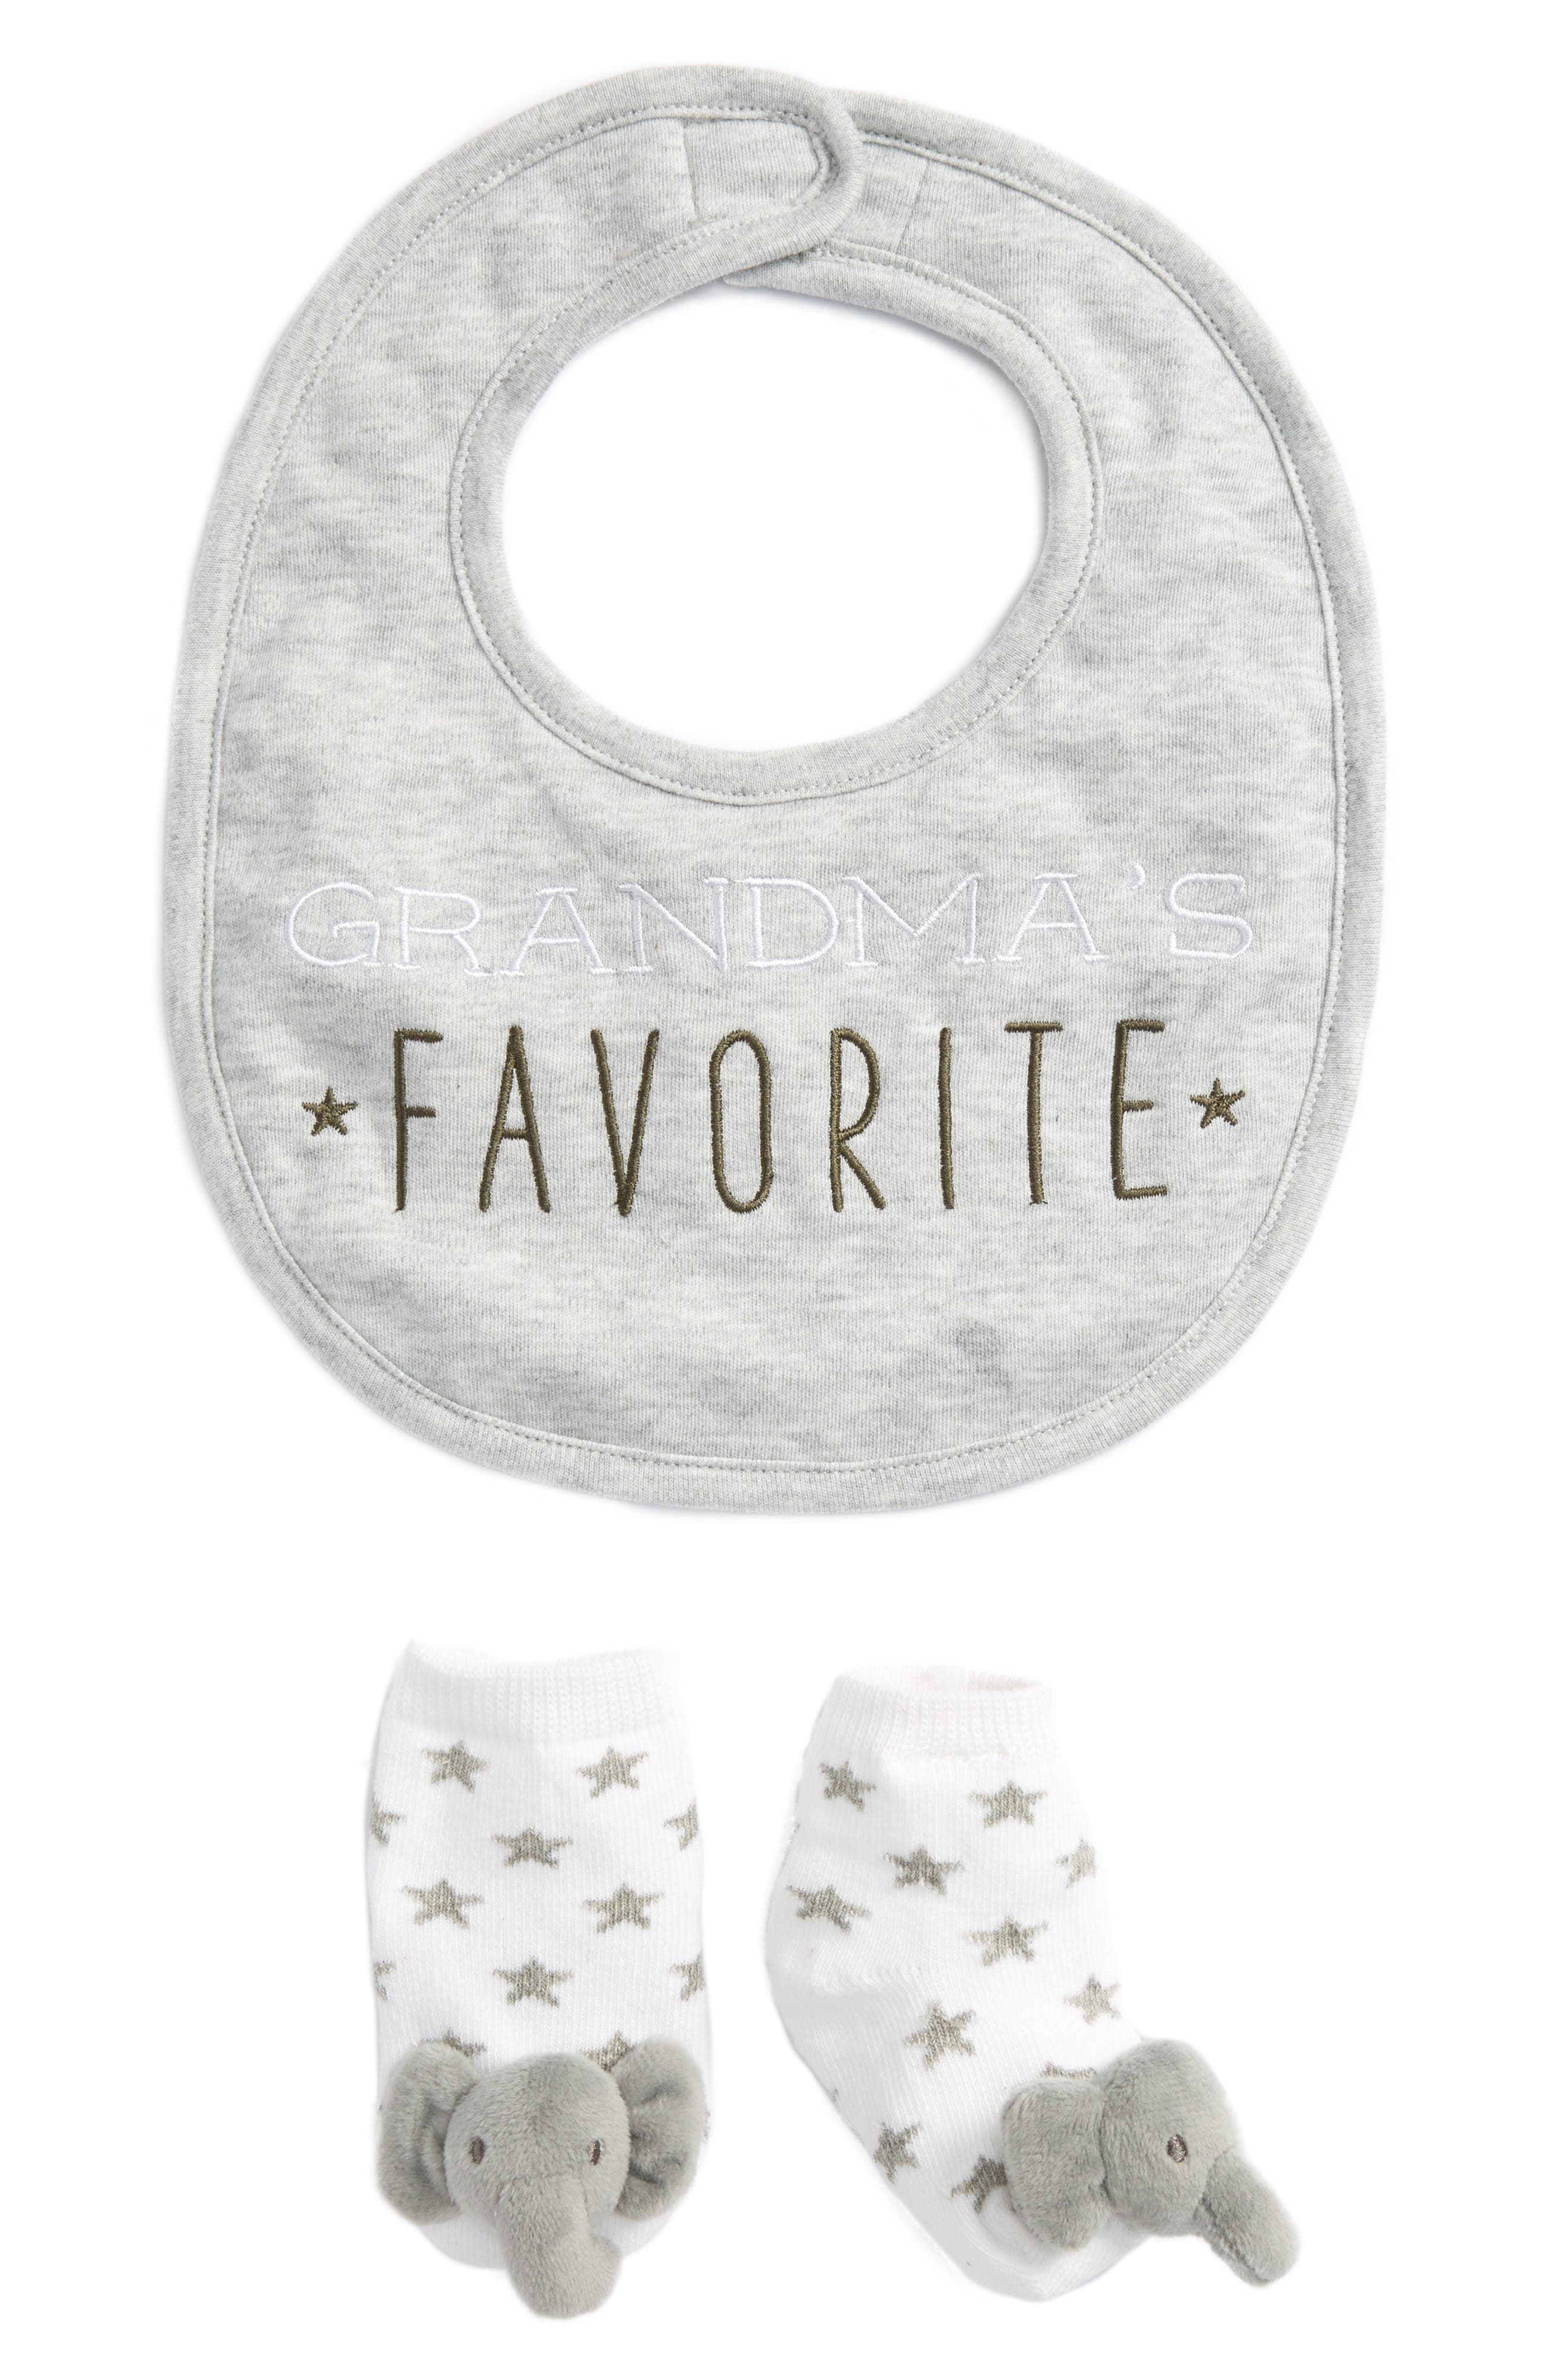 Main Image - Mud Pie Grandma's Favorite Bib & Socks Set (Baby)